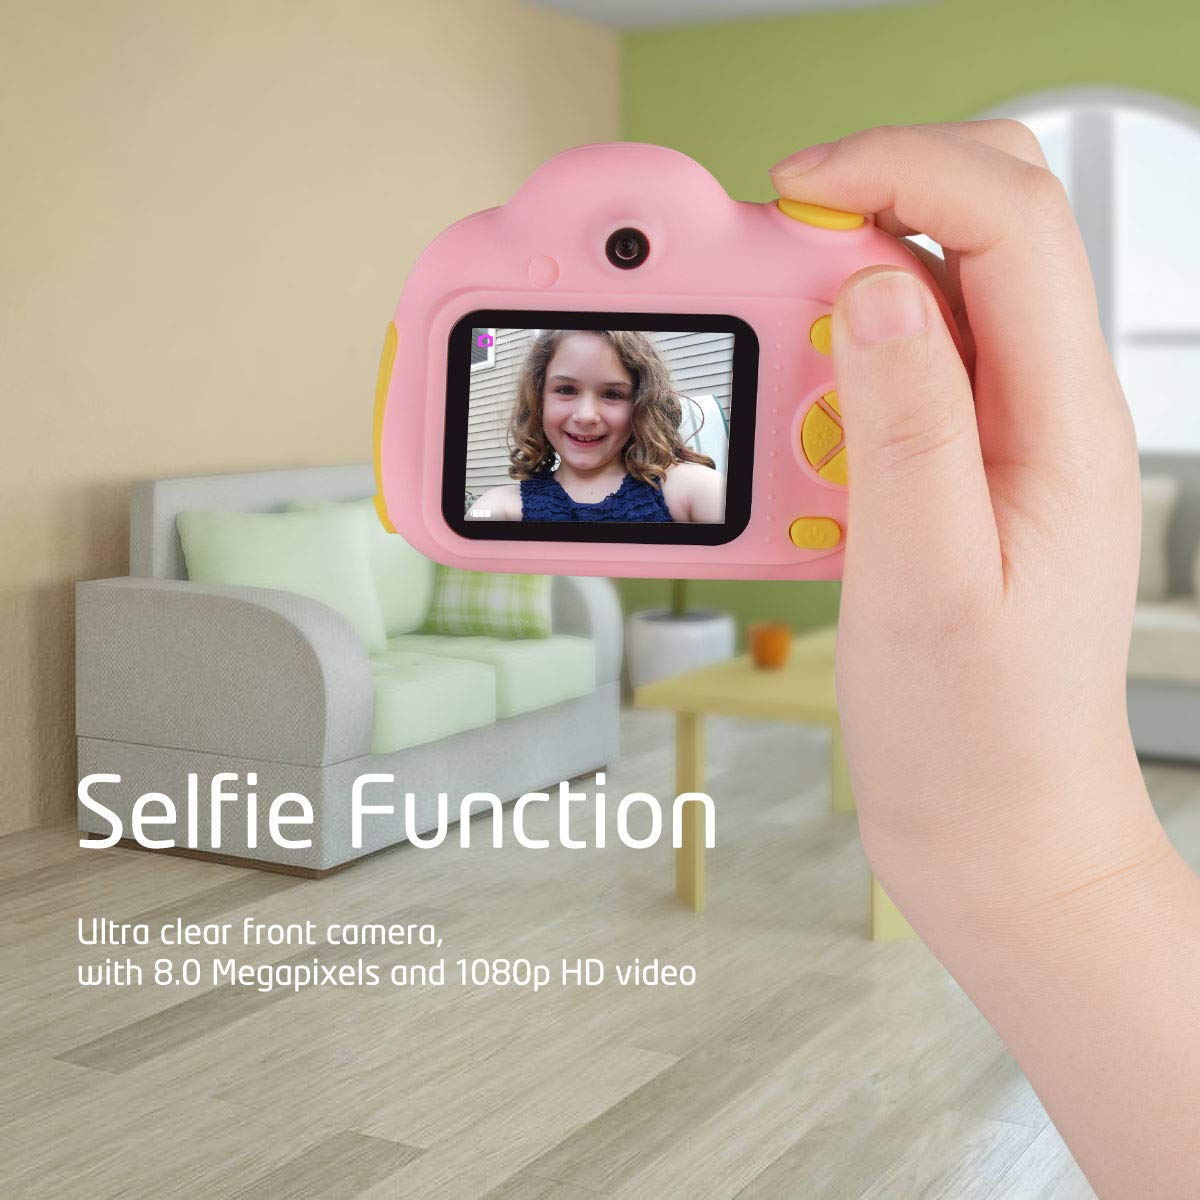 Funkprofi Kids Camera 1080P 8MP Front & Rear Camera Clear Digital Recorder Camcorder for Kids, Selfie Function, Funny Frames, Face Recognition, Support 32GB Memory Card, Best Gift for Boys and Girls by Funkprofi (Image #2)